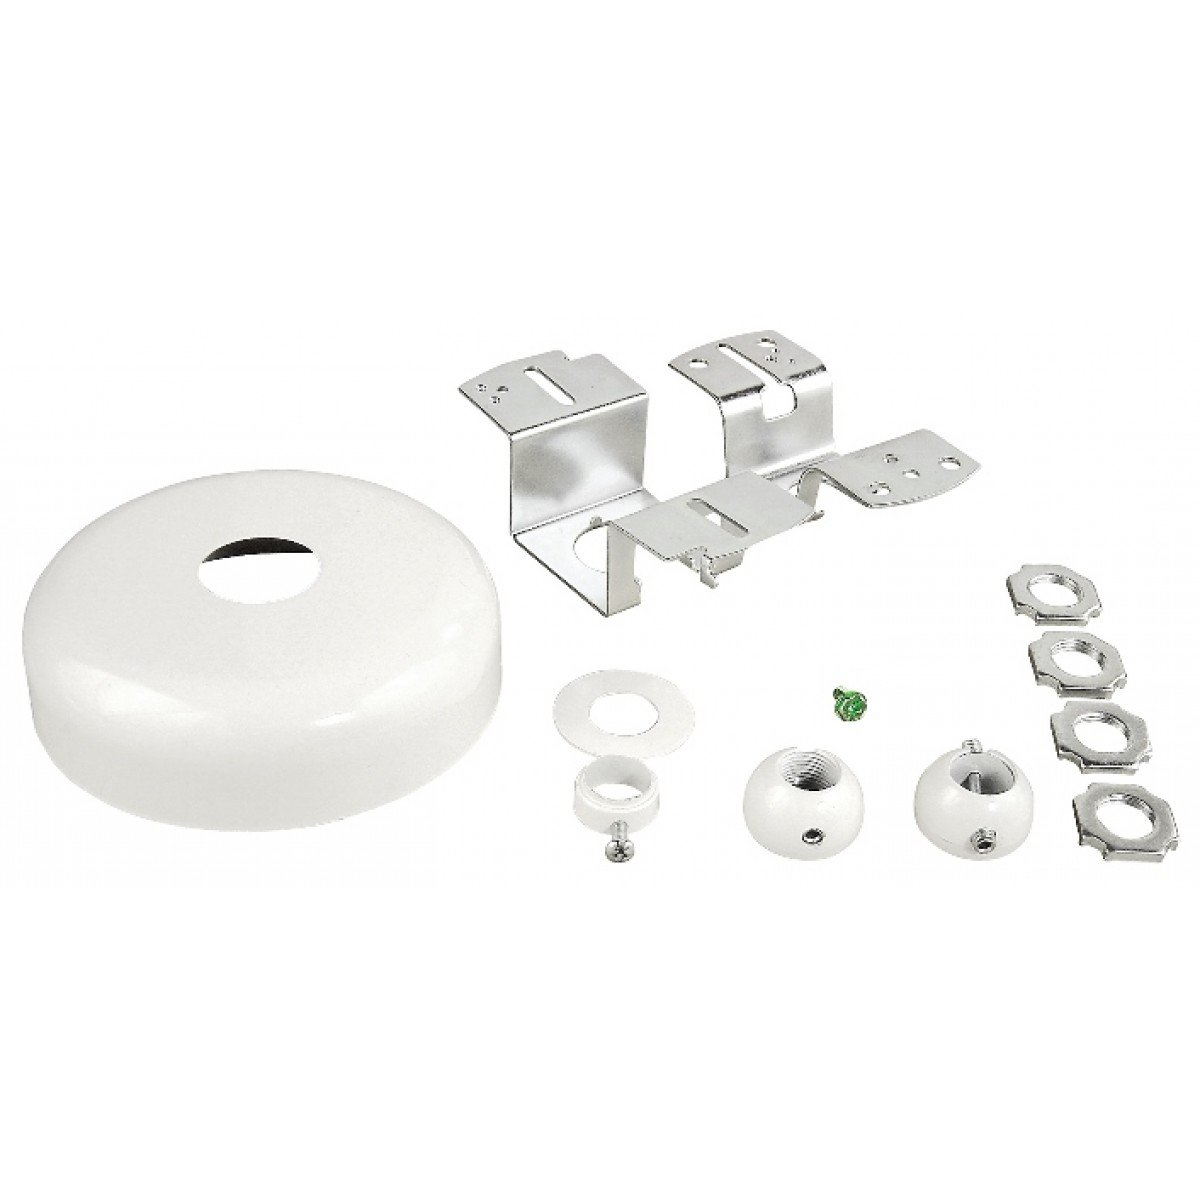 2 Pcs, Light Fixture Canopy Kit-Universal, Steel Powder Coated White for Hanging Fluorescent Lighting & Exit Signs